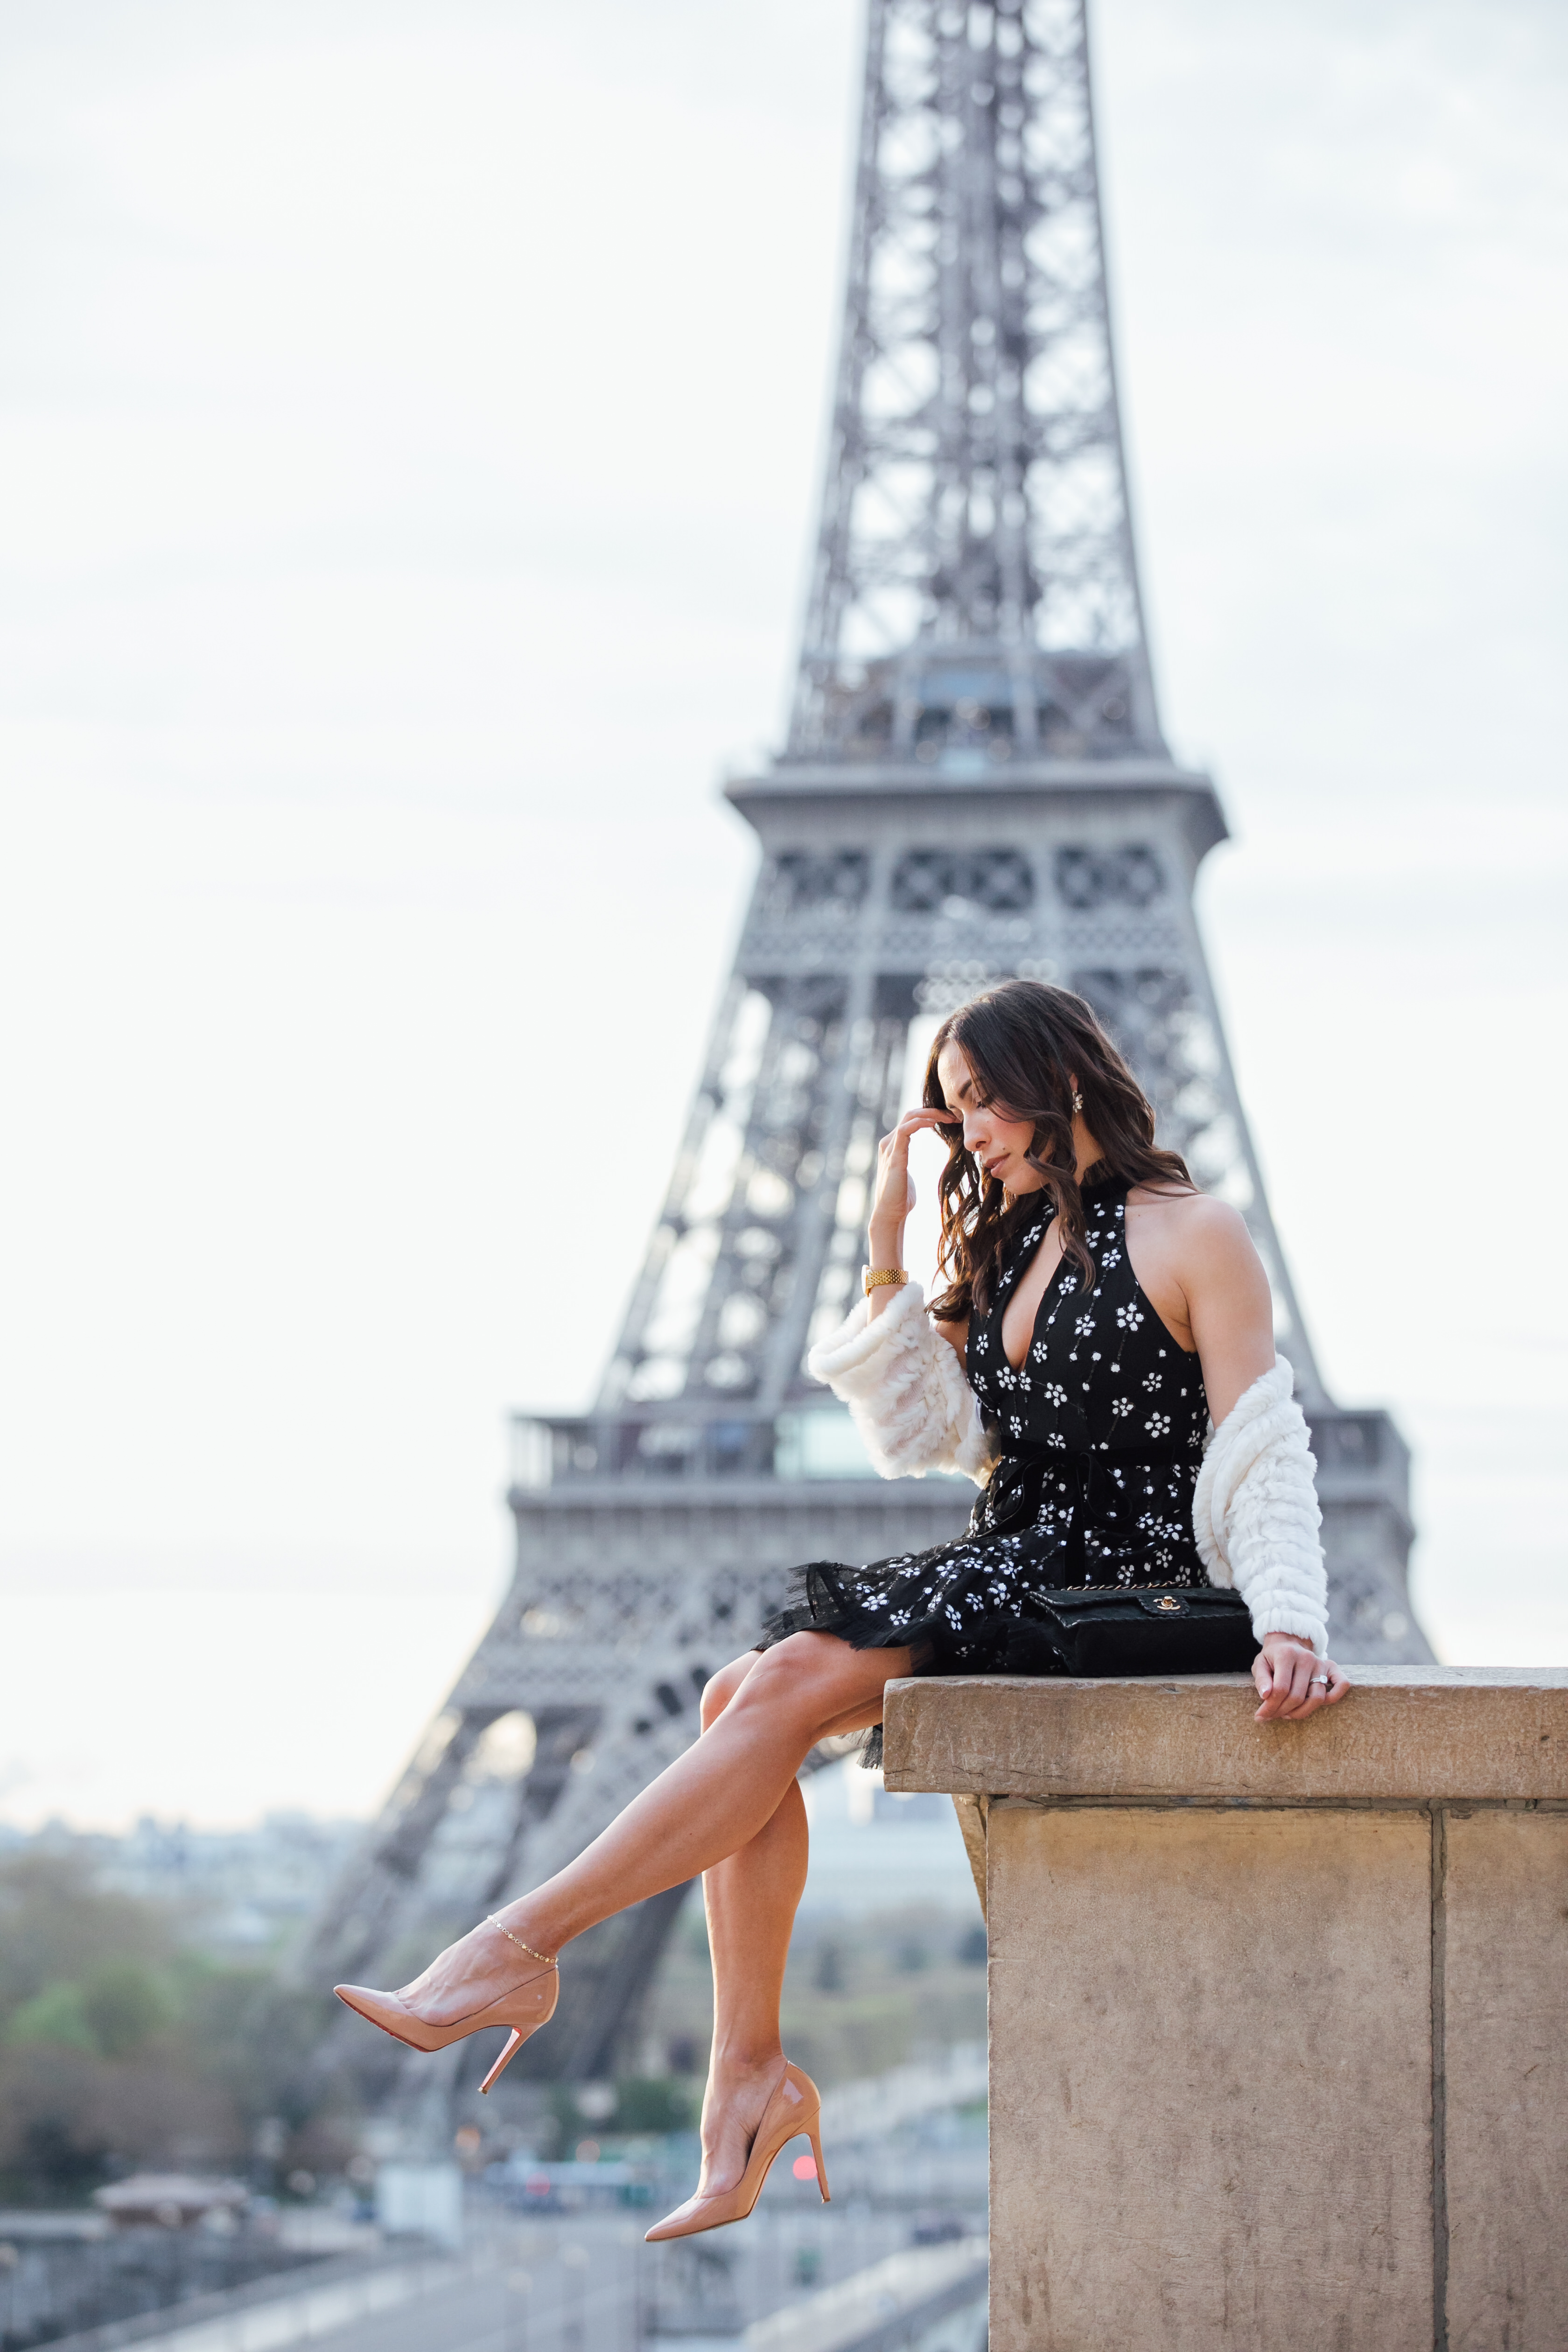 Alexis Poppy dress worn at the Eiffel Tower in Paris by Amanda from A Glam Lifestyle fashion blog